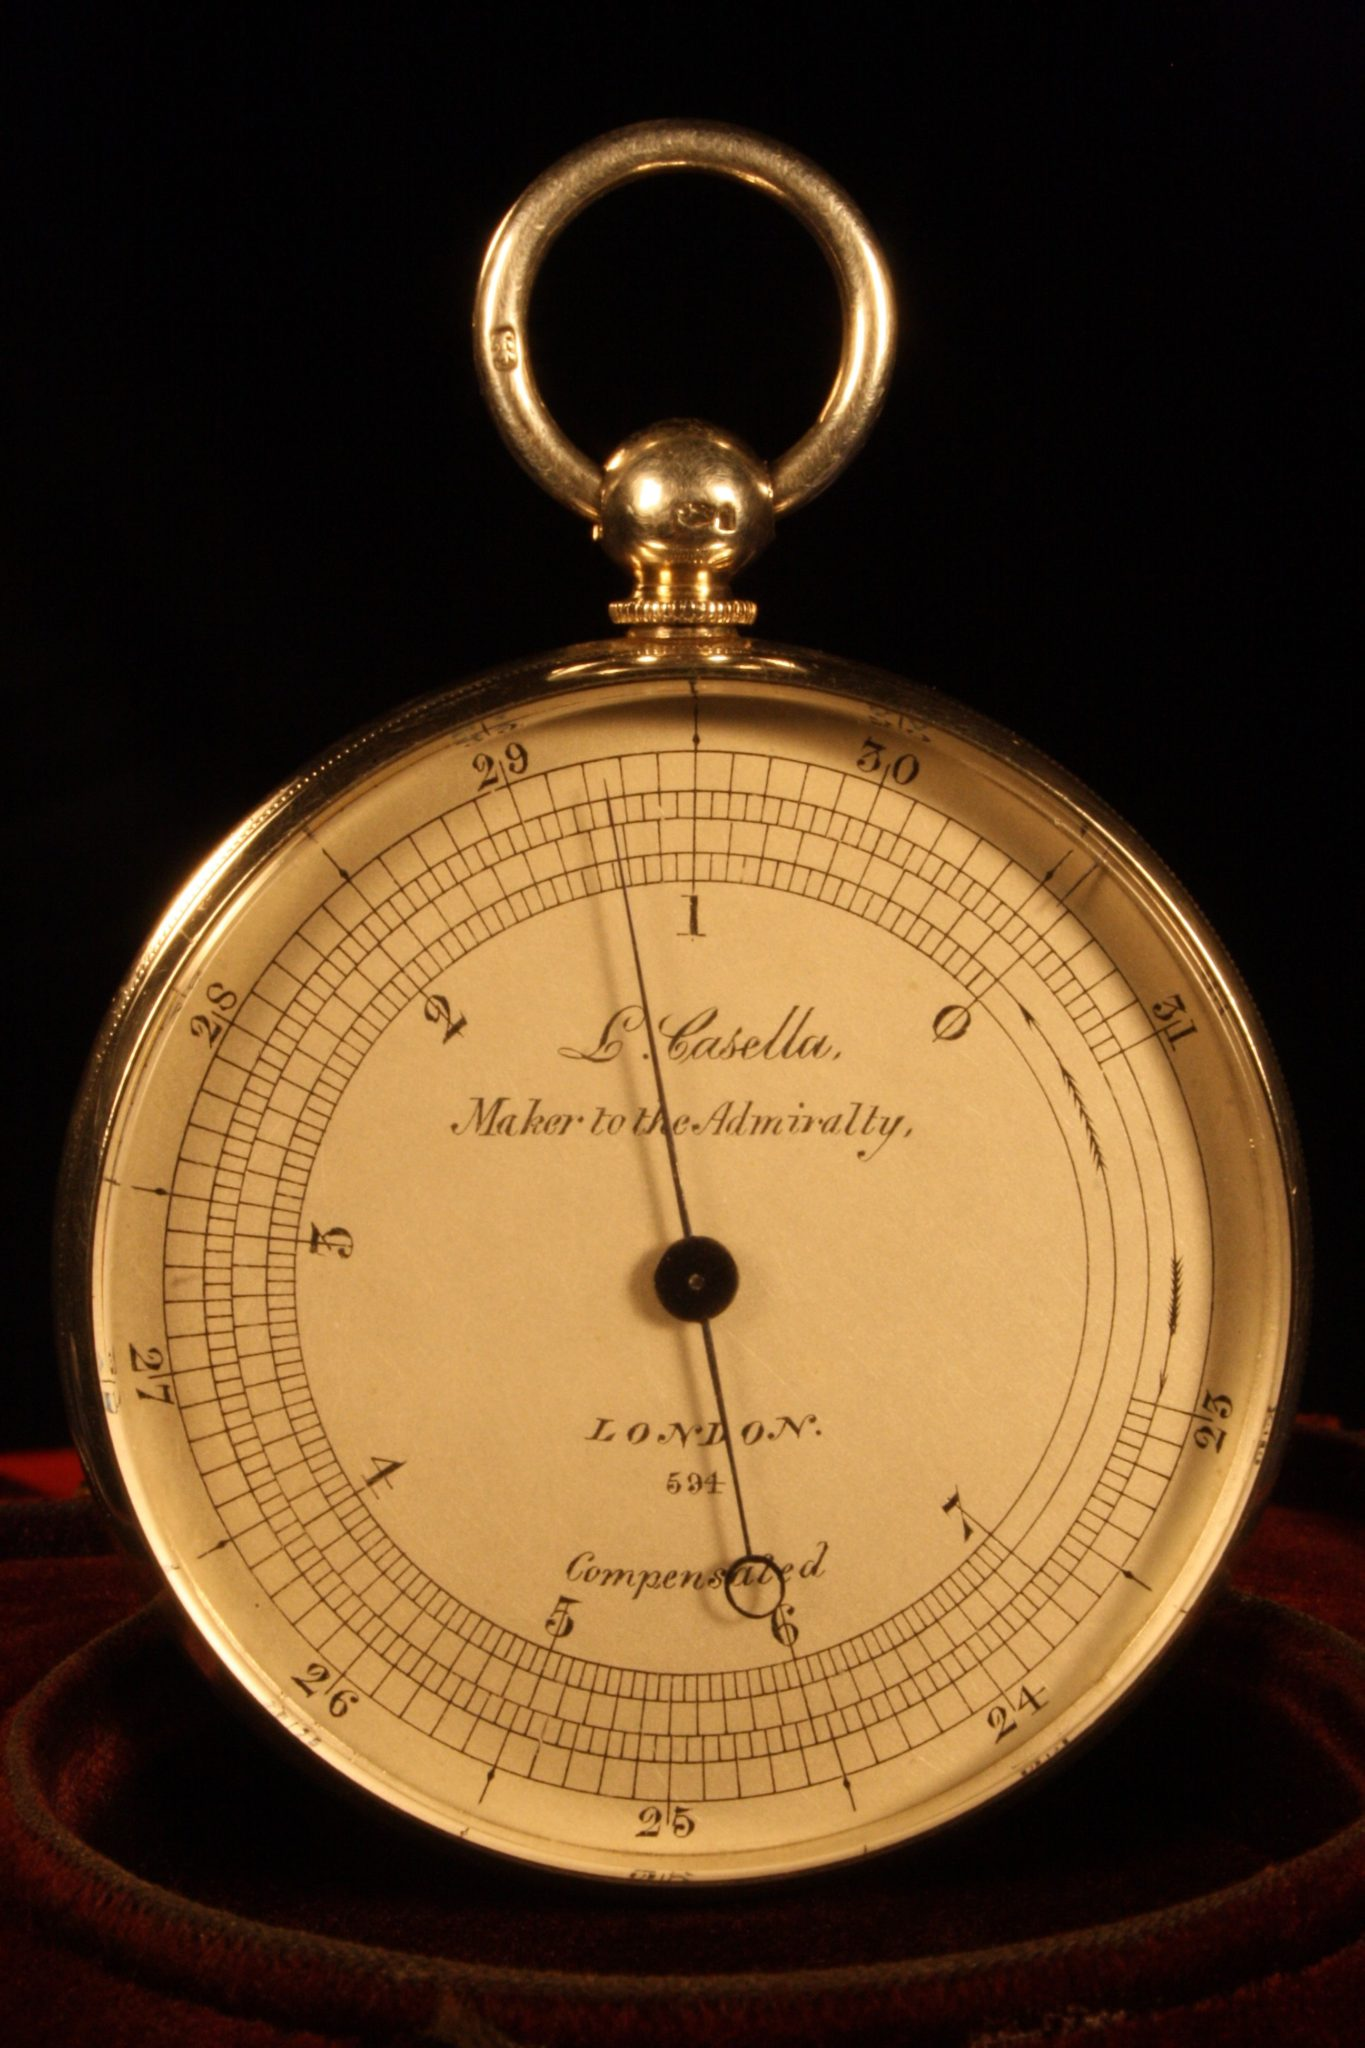 Image of Silver Pocket Barometer by Casella No 594 c1863